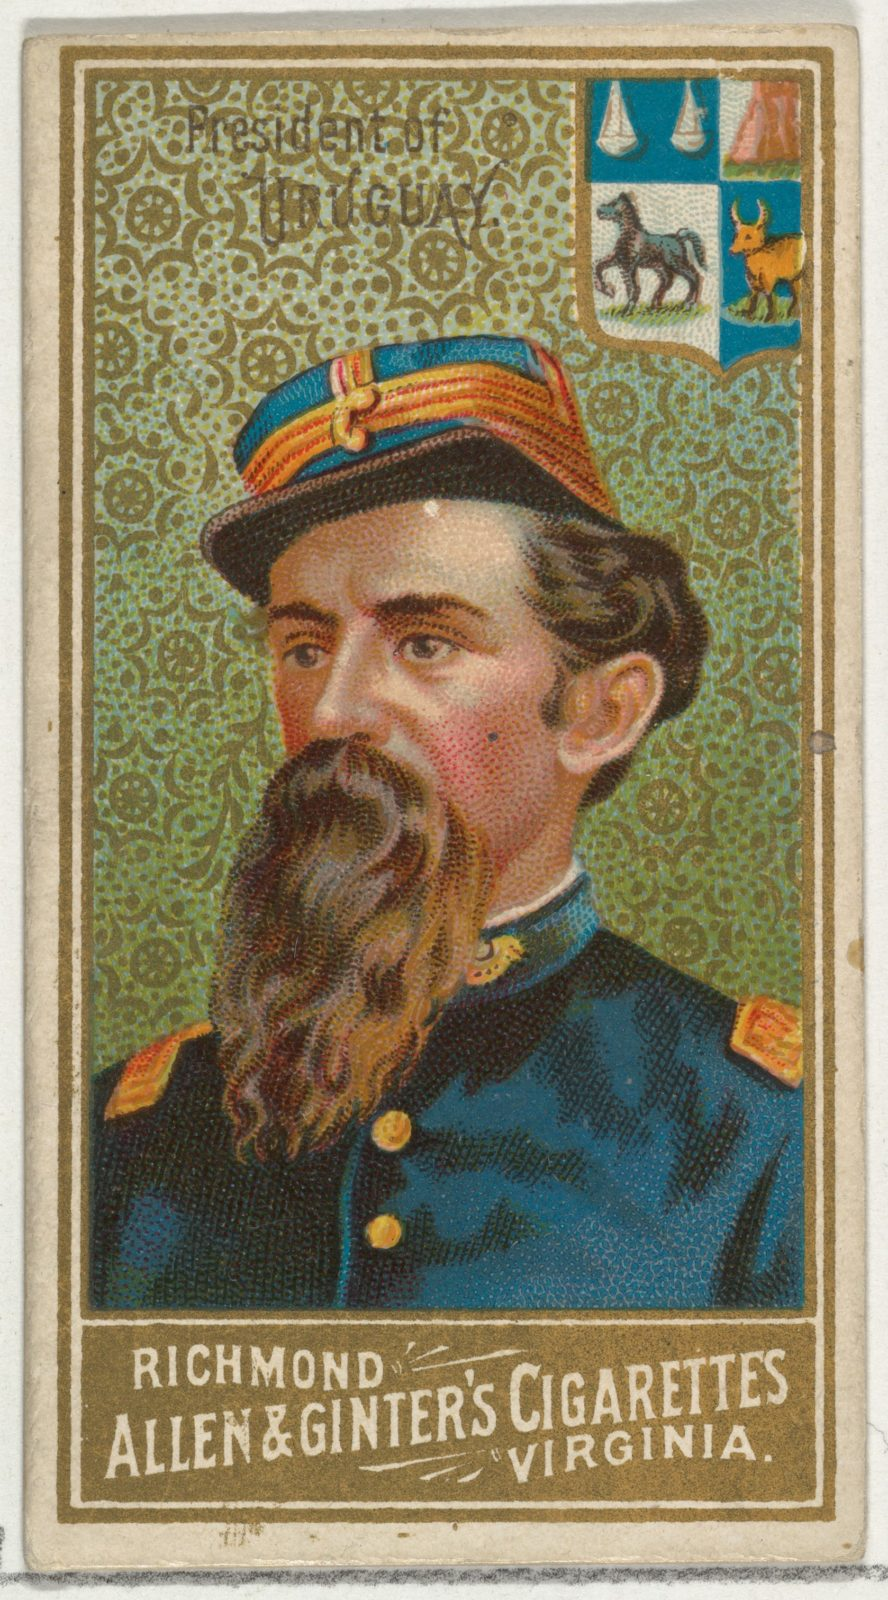 President of Uruguay, from World's Sovereigns series (N34) for Allen & Ginter Cigarettes